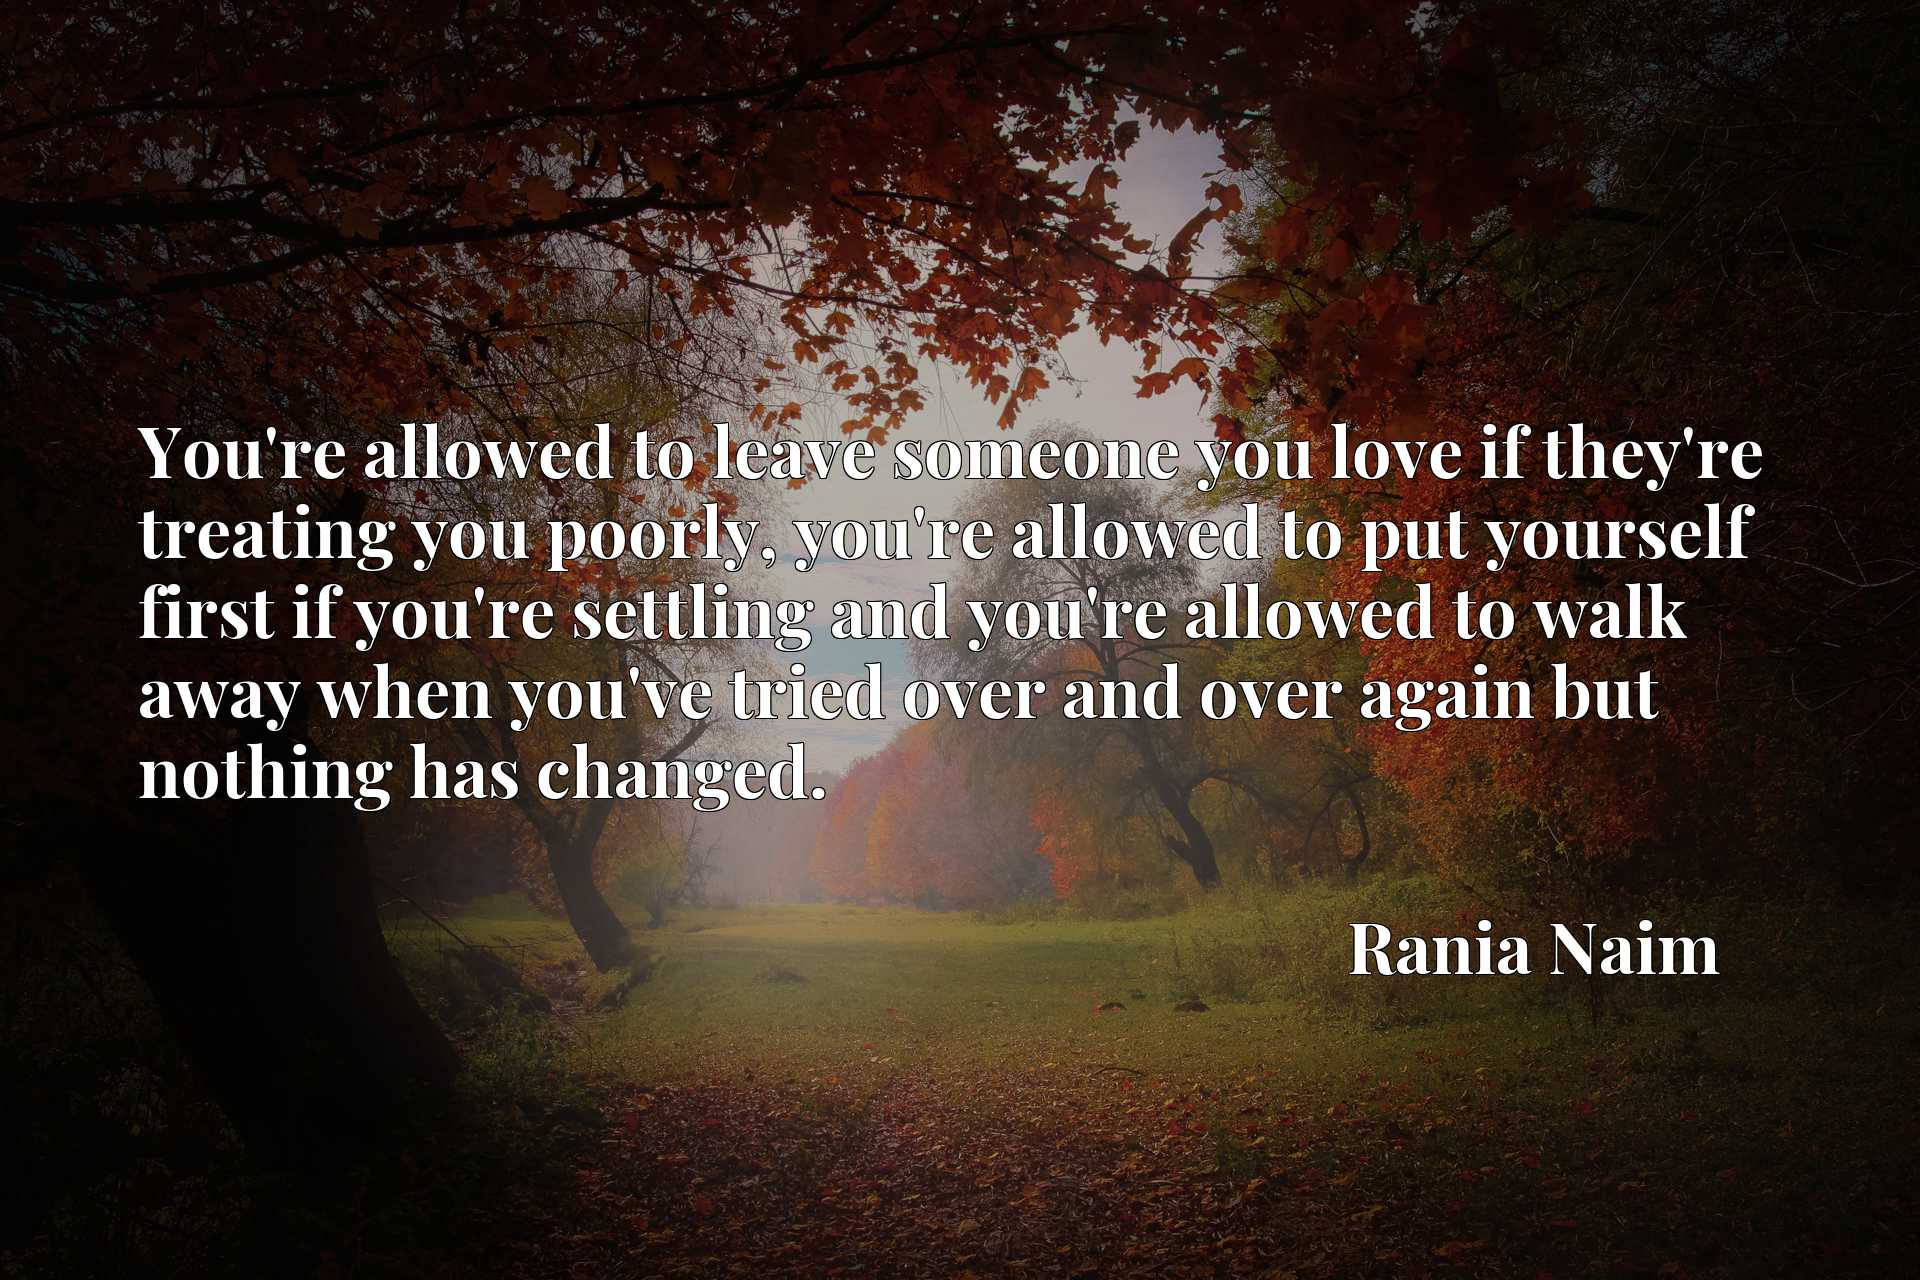 You're allowed to leave someone you love if they're treating you poorly, you're allowed to put yourself first if you're settling and you're allowed to walk away when you've tried over and over again but nothing has changed.